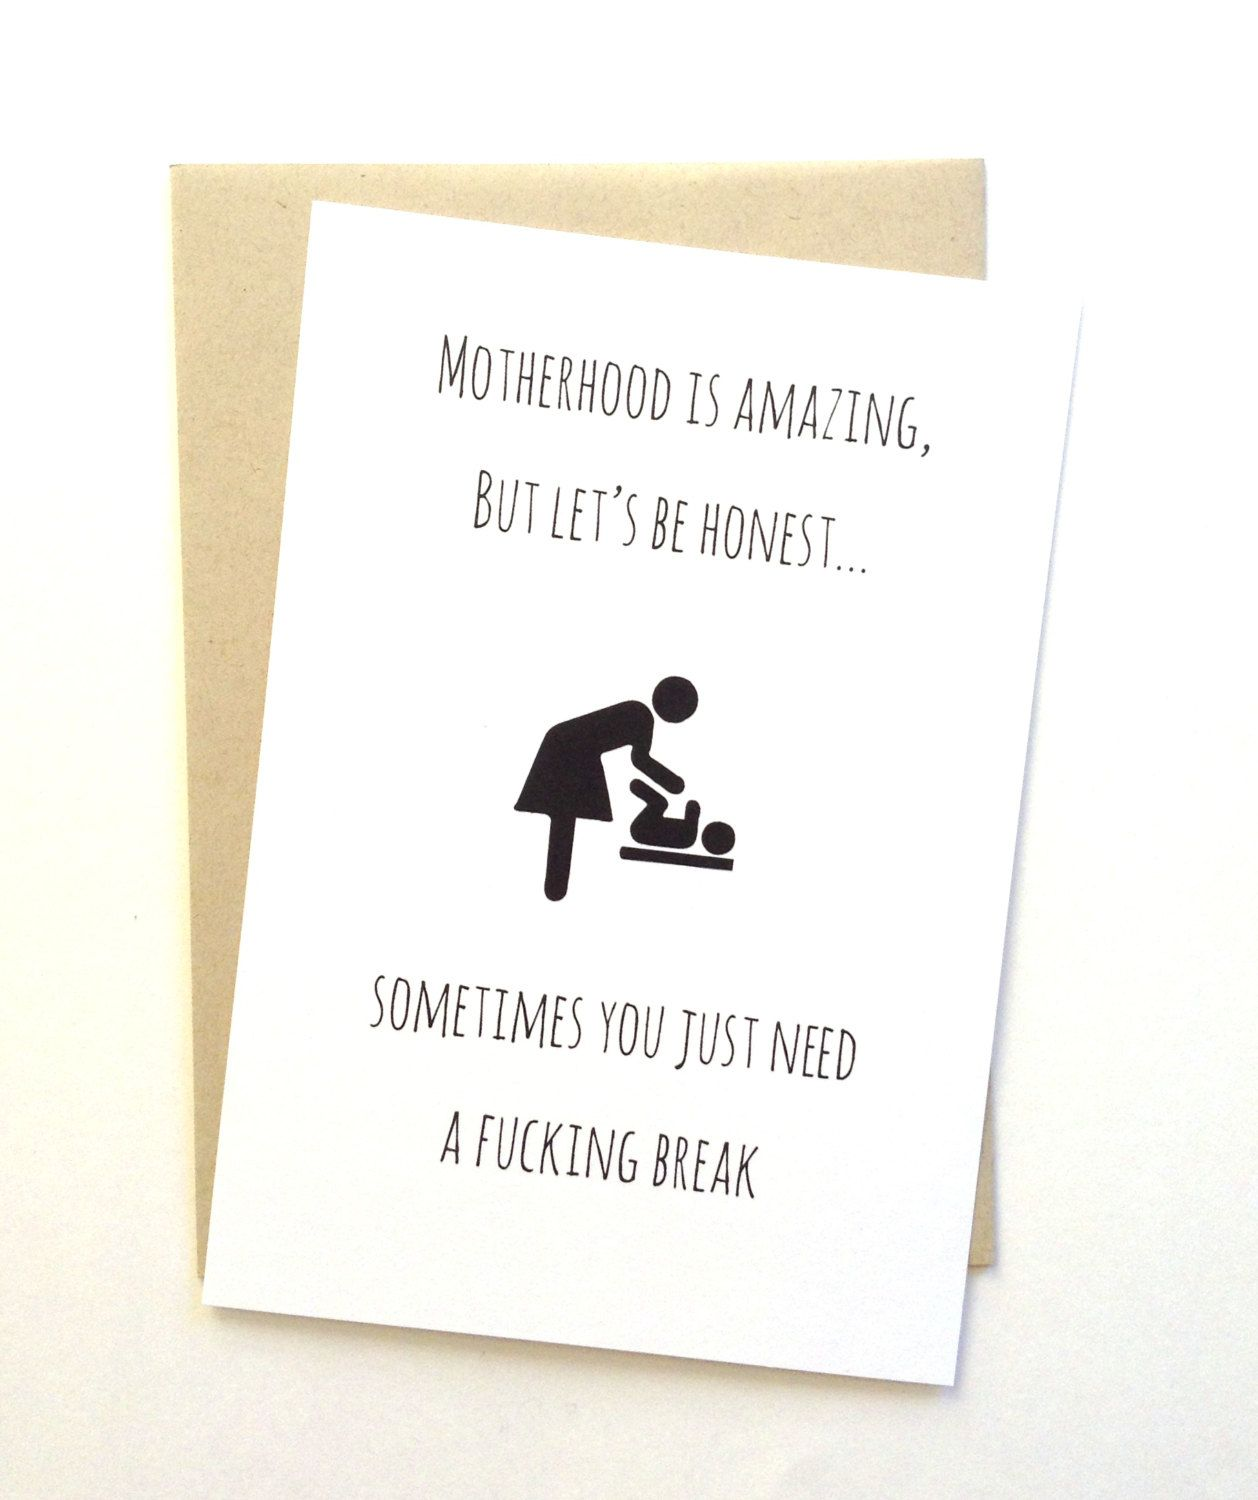 new mom card, new mother support and encouragement card, gift for expecting mom. Motherhood is amazing.